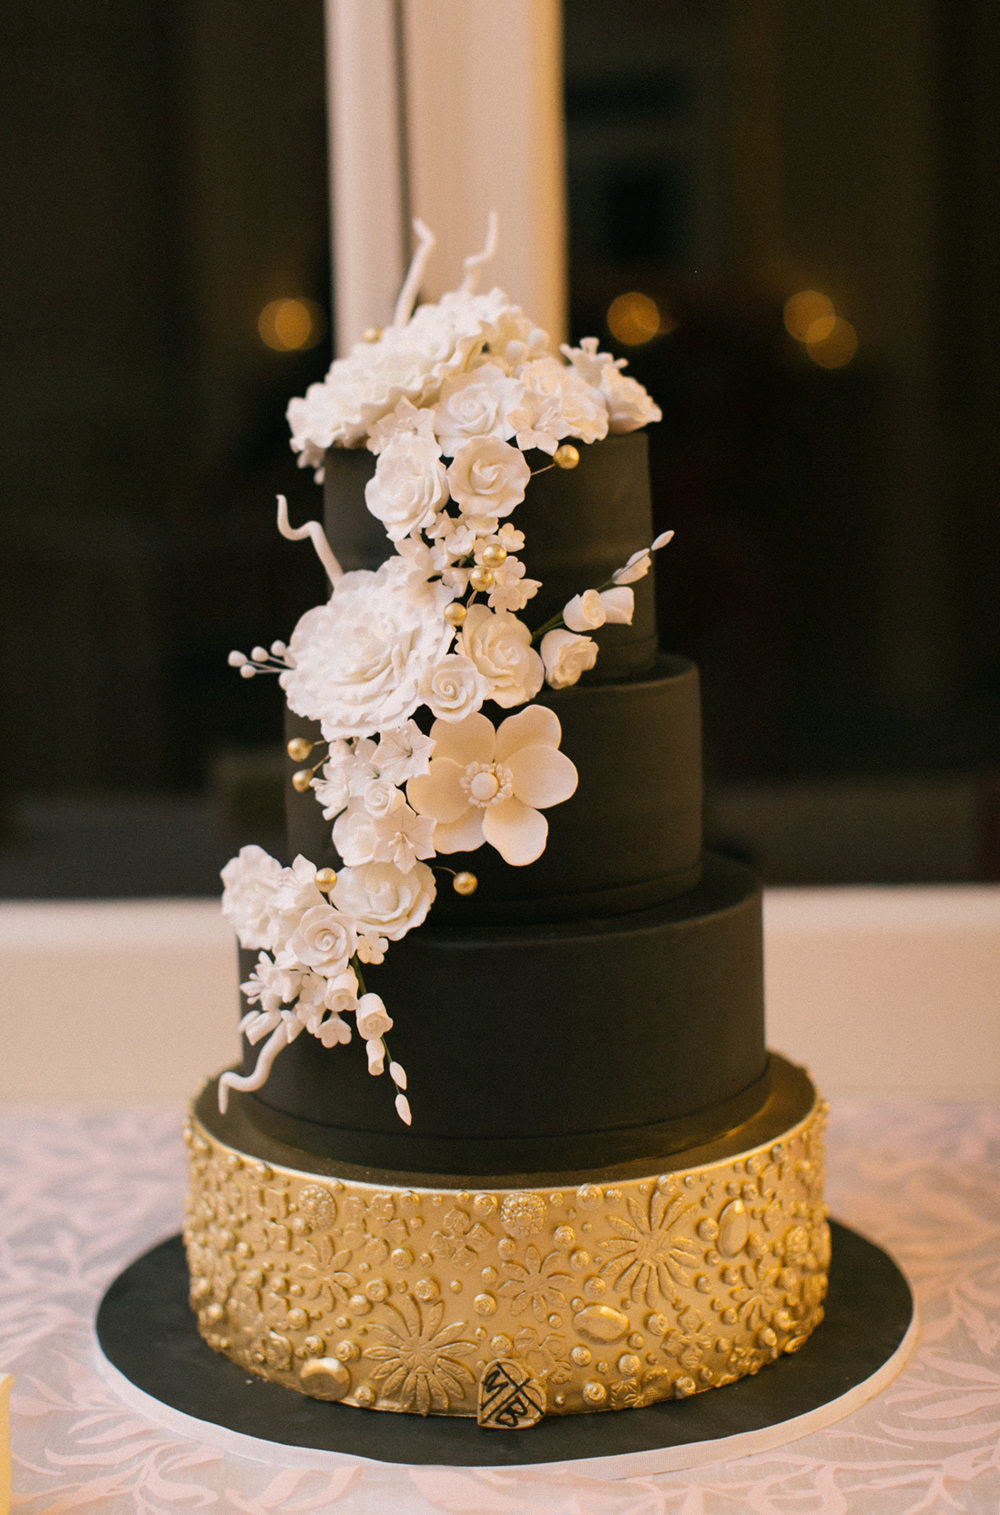 Wedding Cake Ideas  Unique   Beautiful Cakes Large and Small     Unique black wedding cake with white flowers and gold base wedding cake  ideas